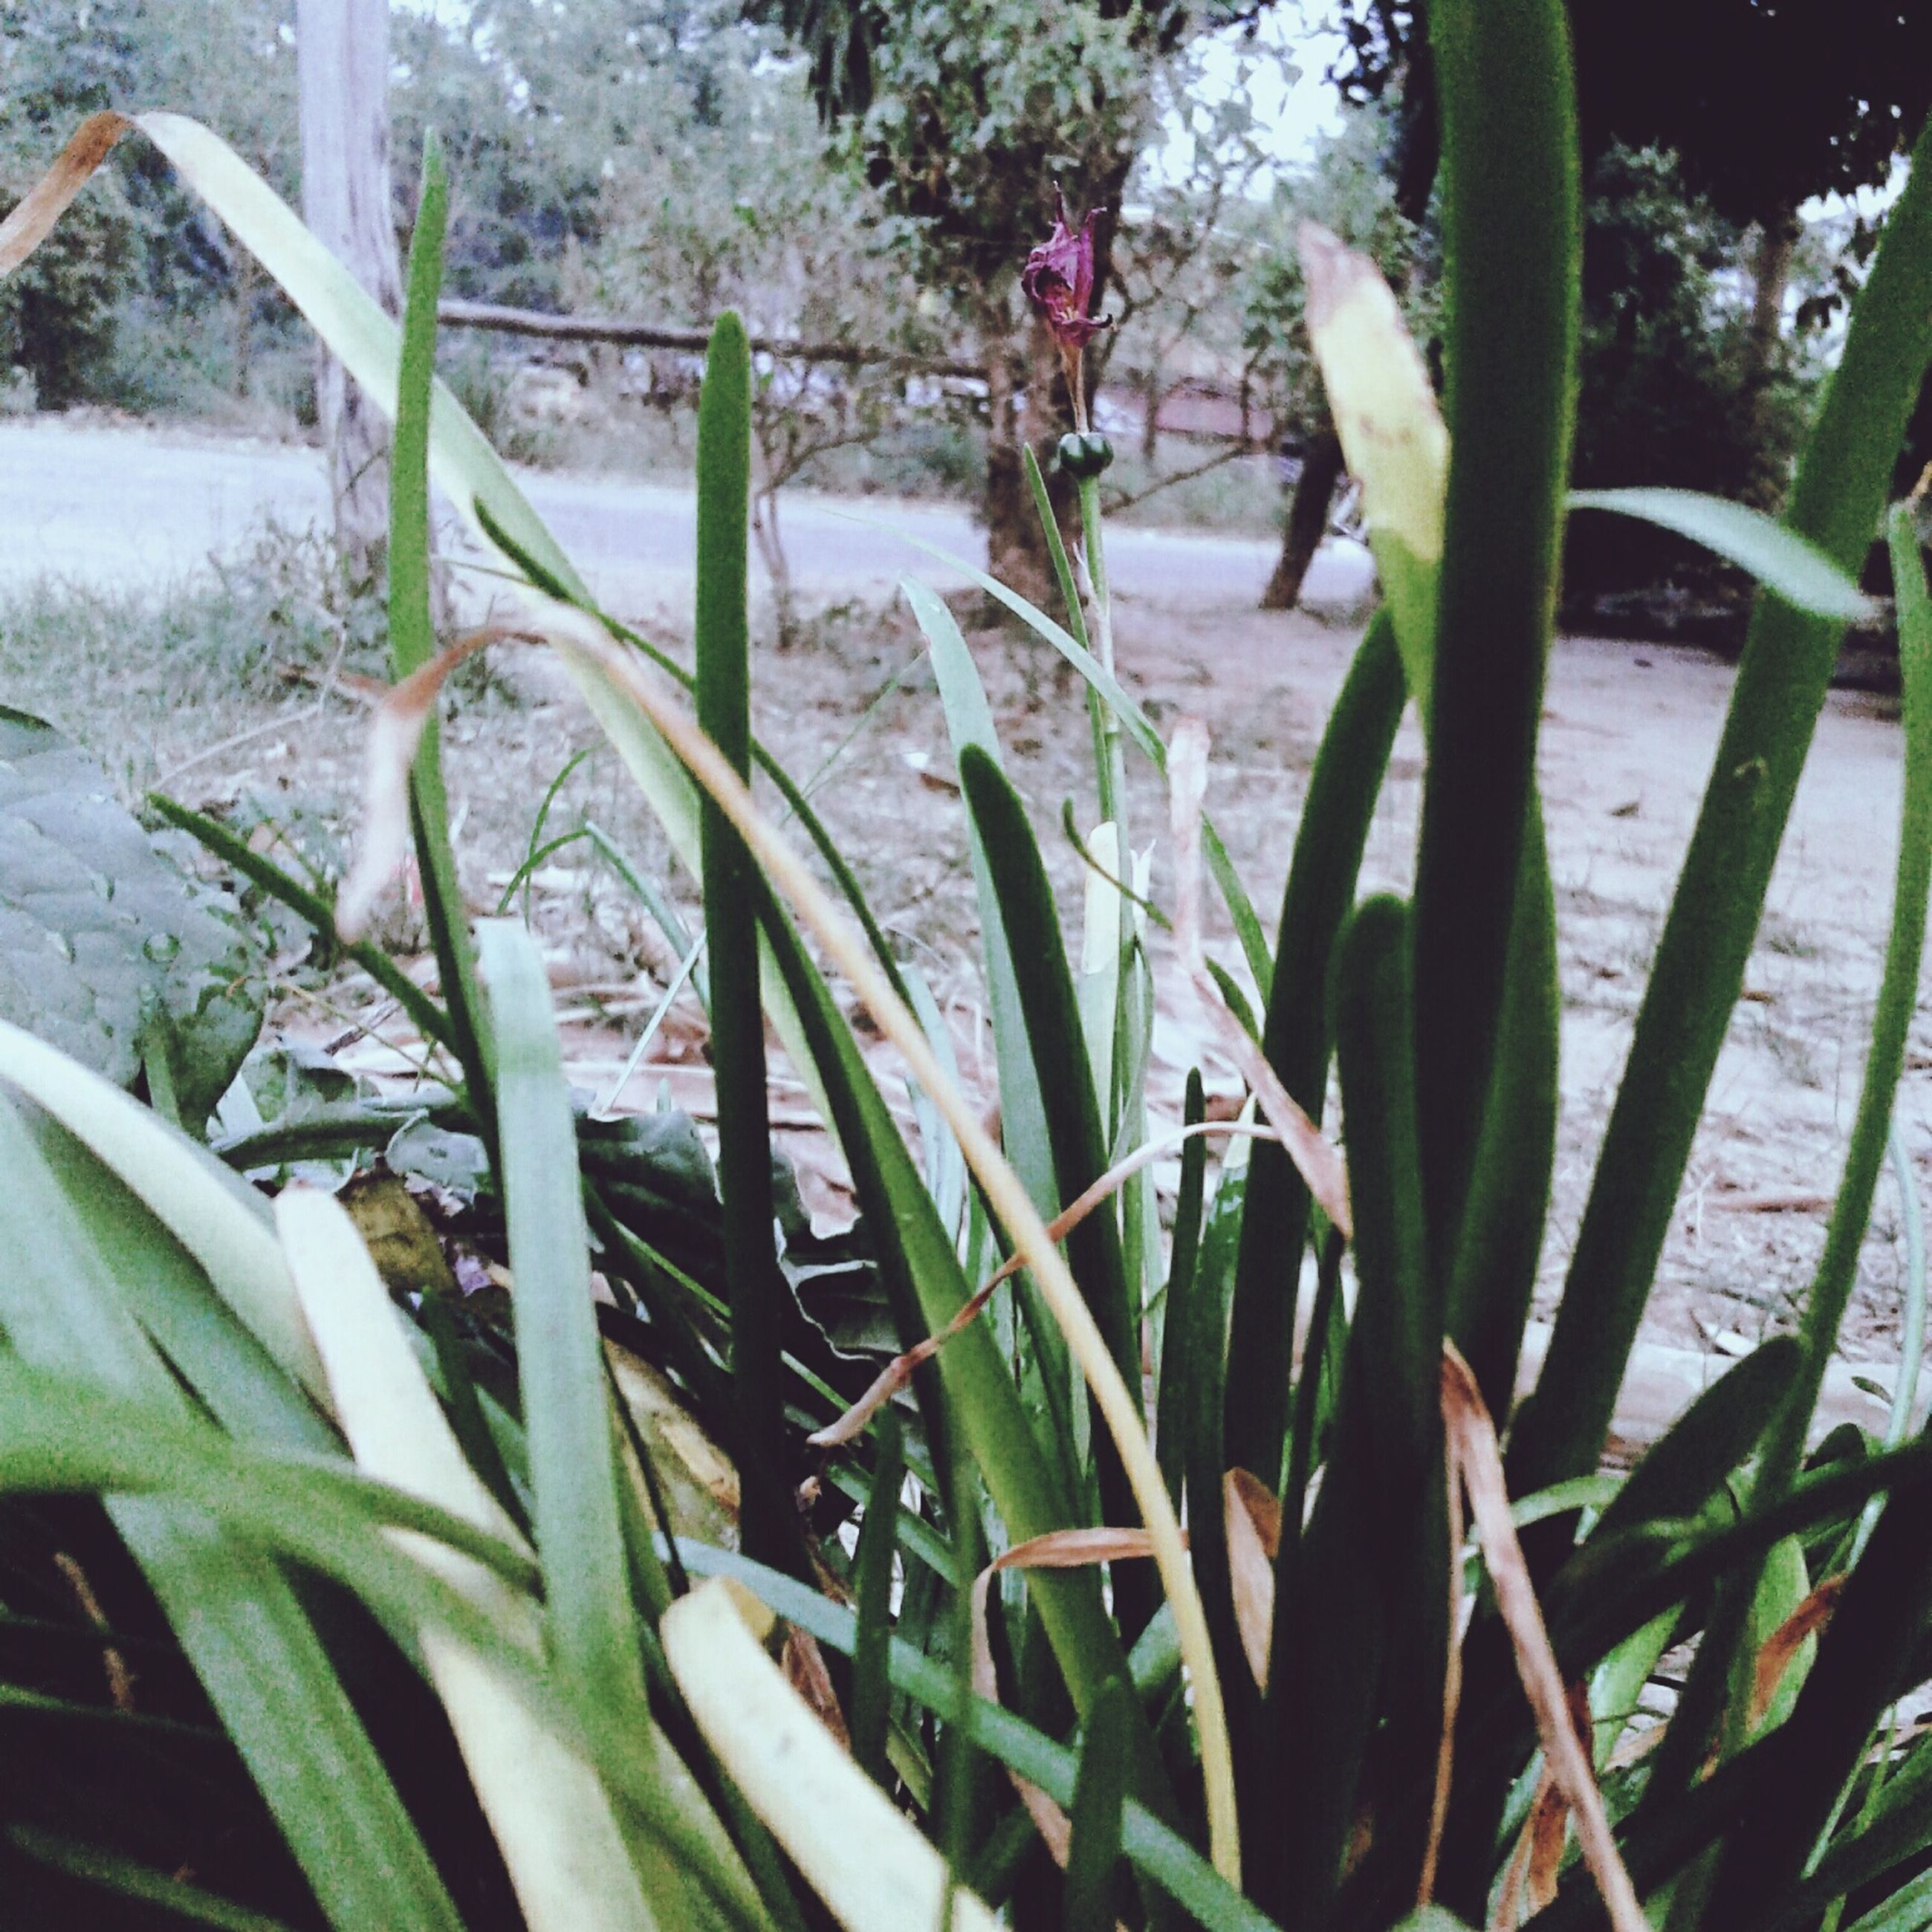 growth, plant, nature, flower, leaf, beauty in nature, green color, no people, day, outdoors, fragility, cactus, freshness, close-up